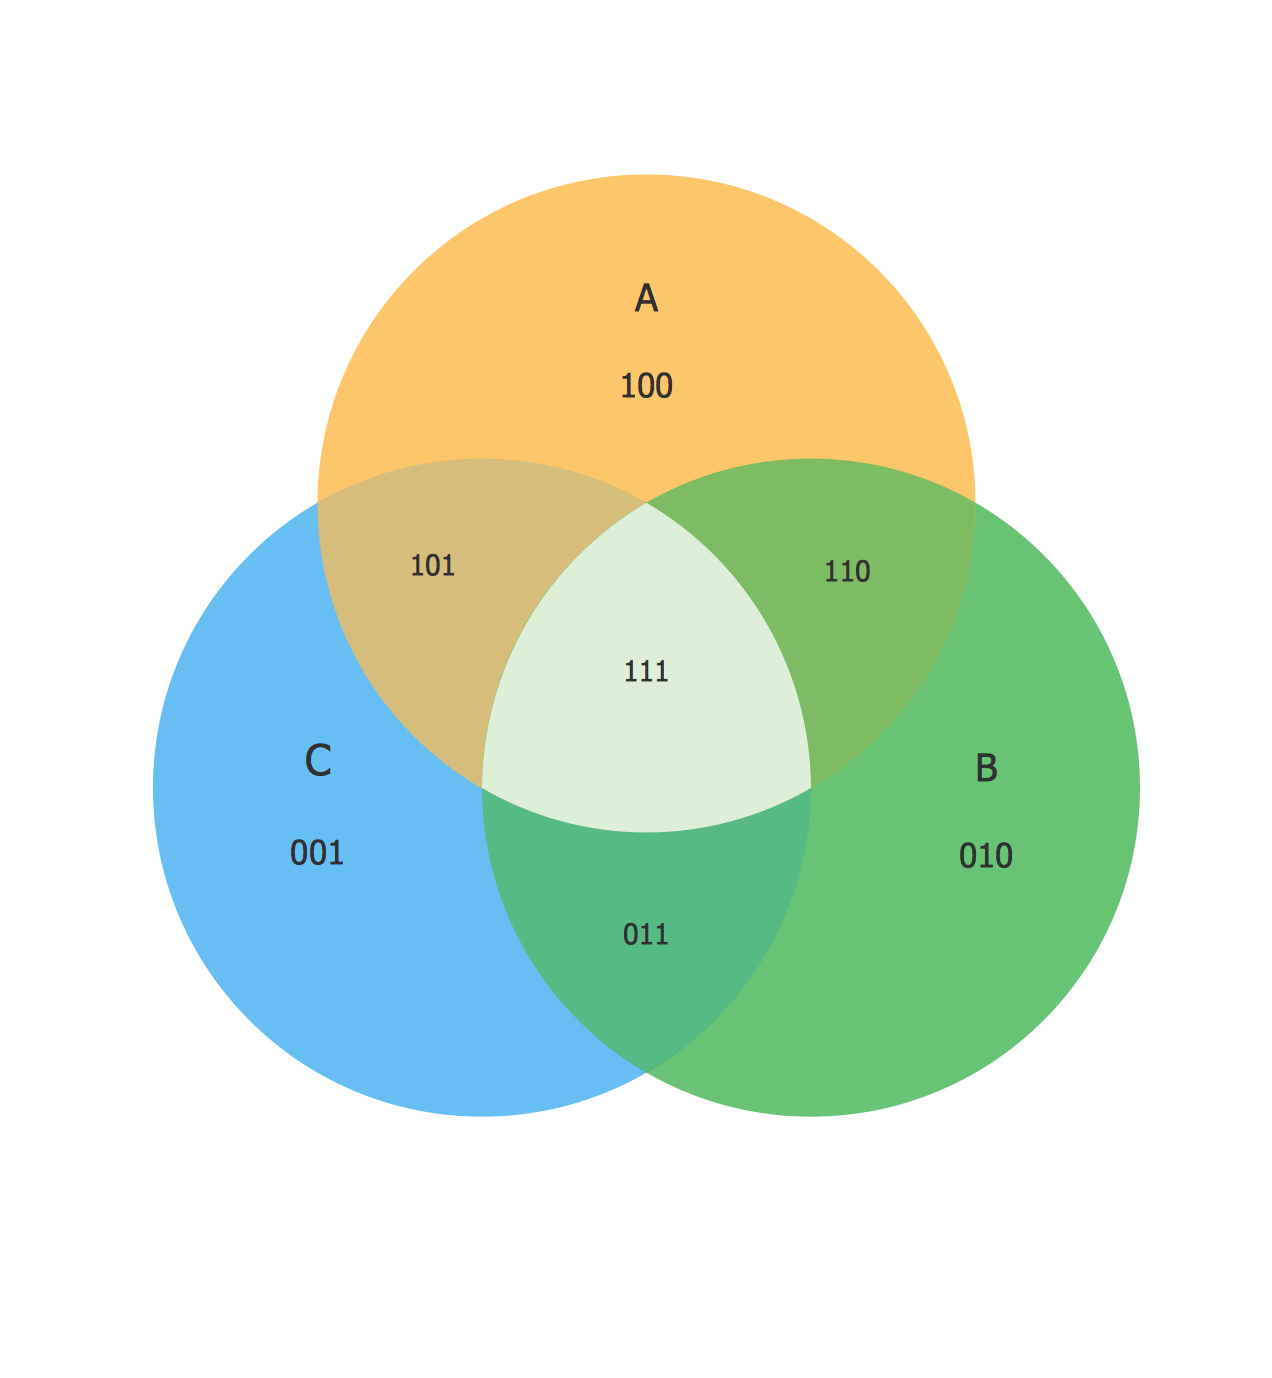 Venn diagram examples for logic problem solving venn diagram as a venn diagram problem solving example 3 sets ccuart Image collections